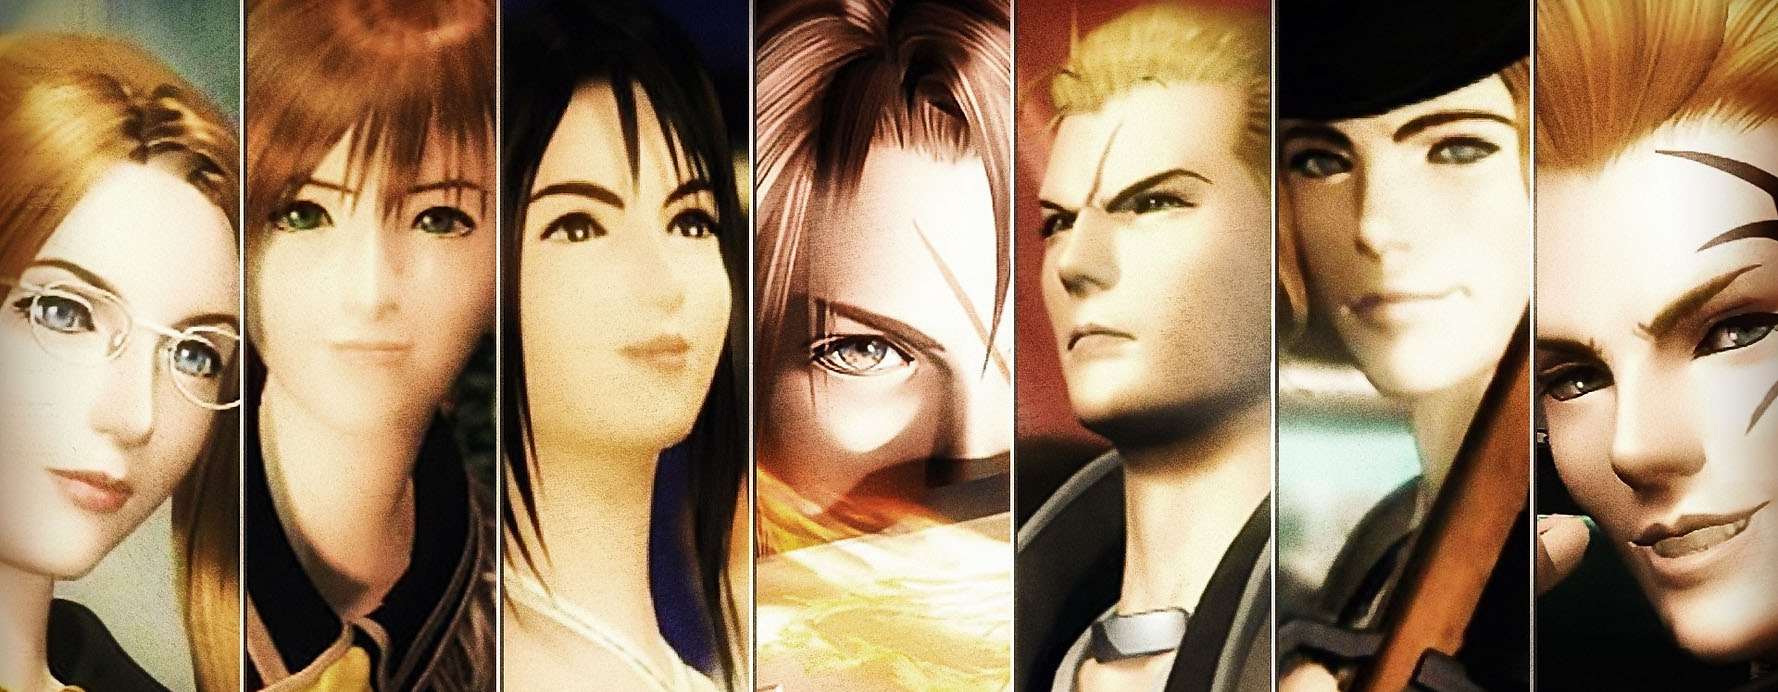 Final Fantasy 8 art 09 characters